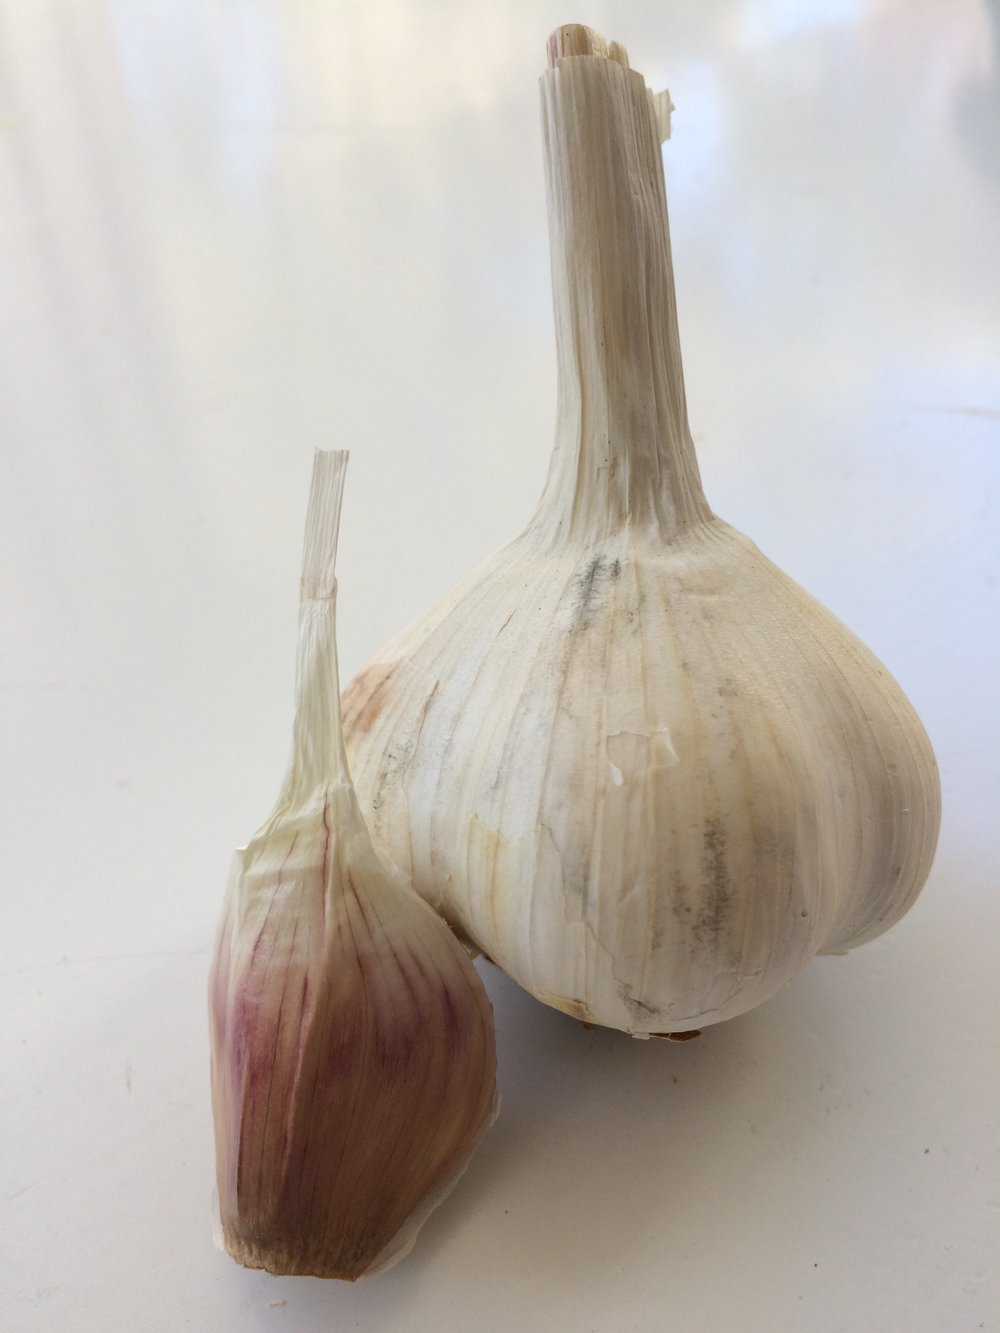 Hardneck garlic and clove.